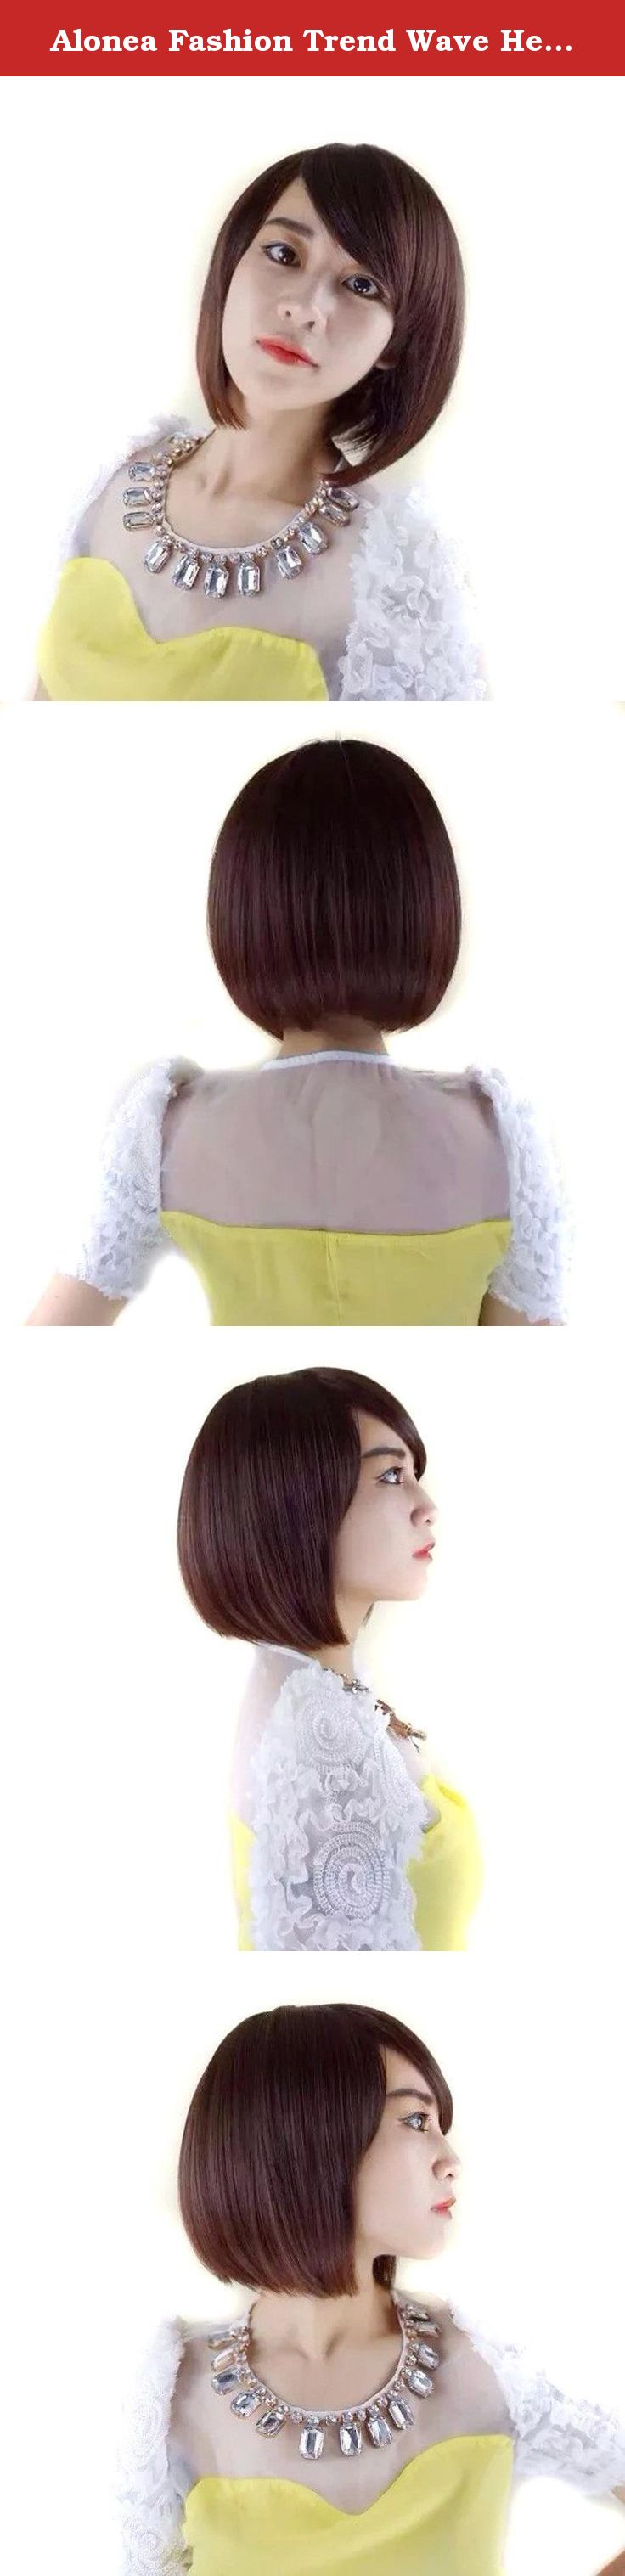 Alonea fashion trend wave head oblique bangs short hair wigs brown